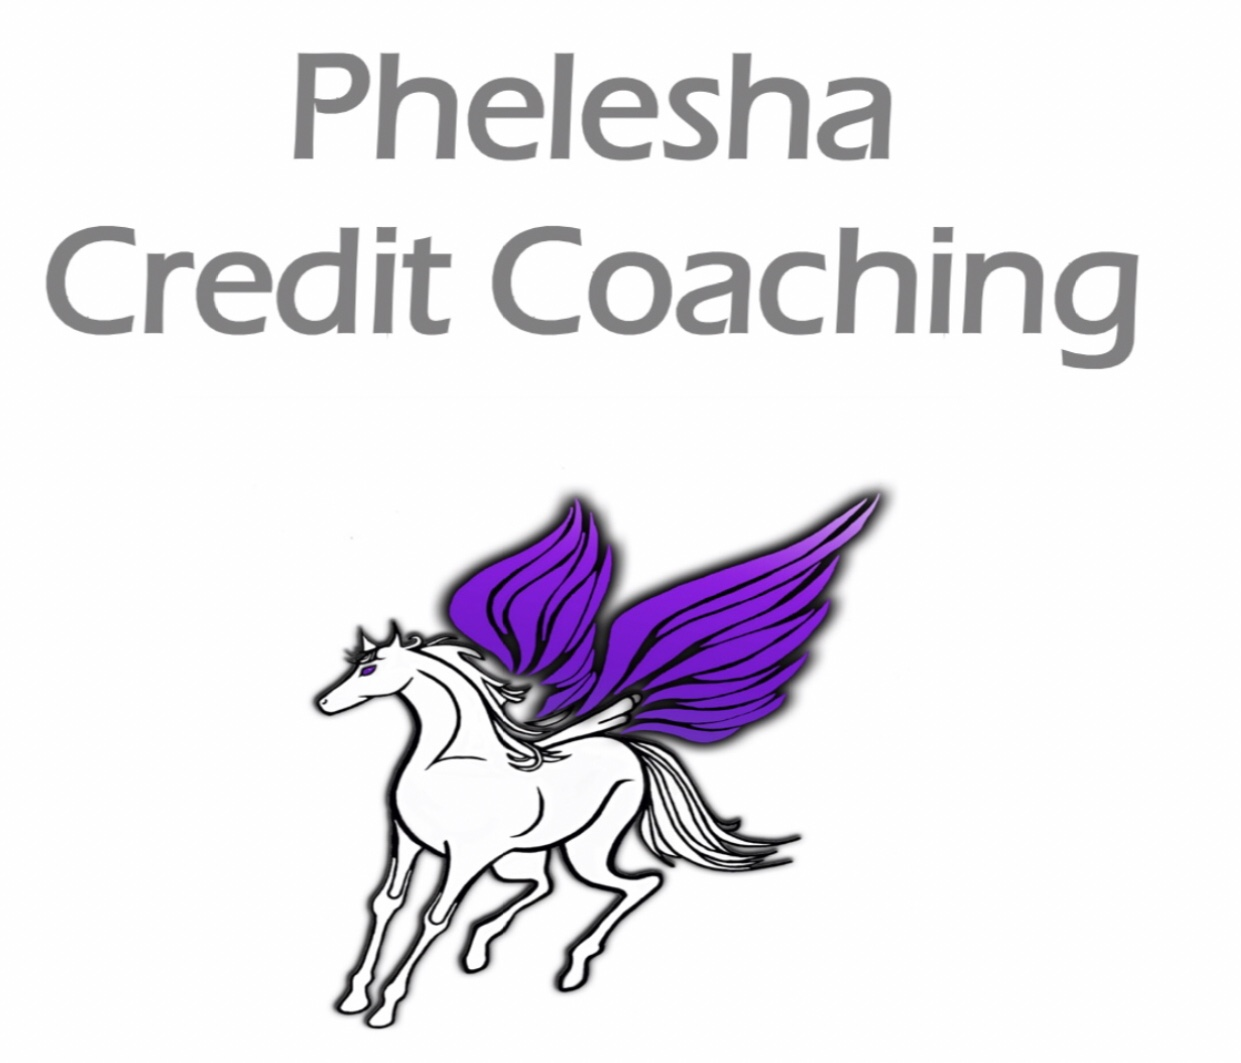 Phelesha Credit Coaching